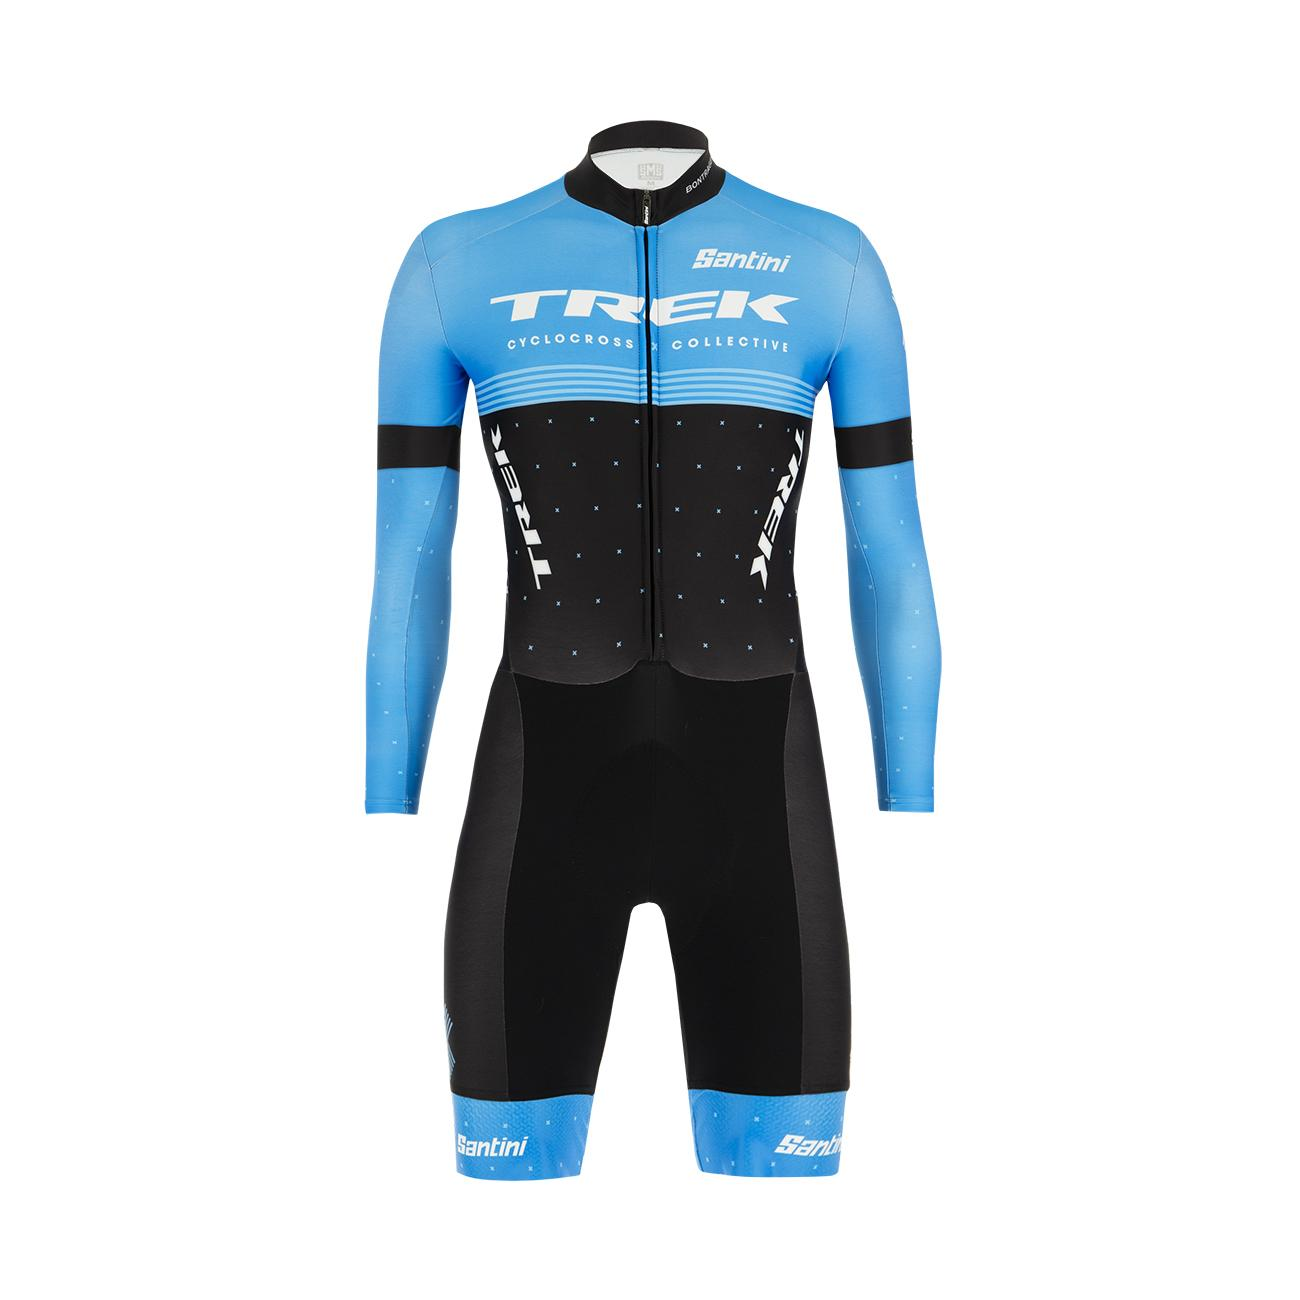 Santini Snelpak Cyclocross Heren Zwart - Trek Factory Racing Cxc Design Boss Cyclocross Skinsuit